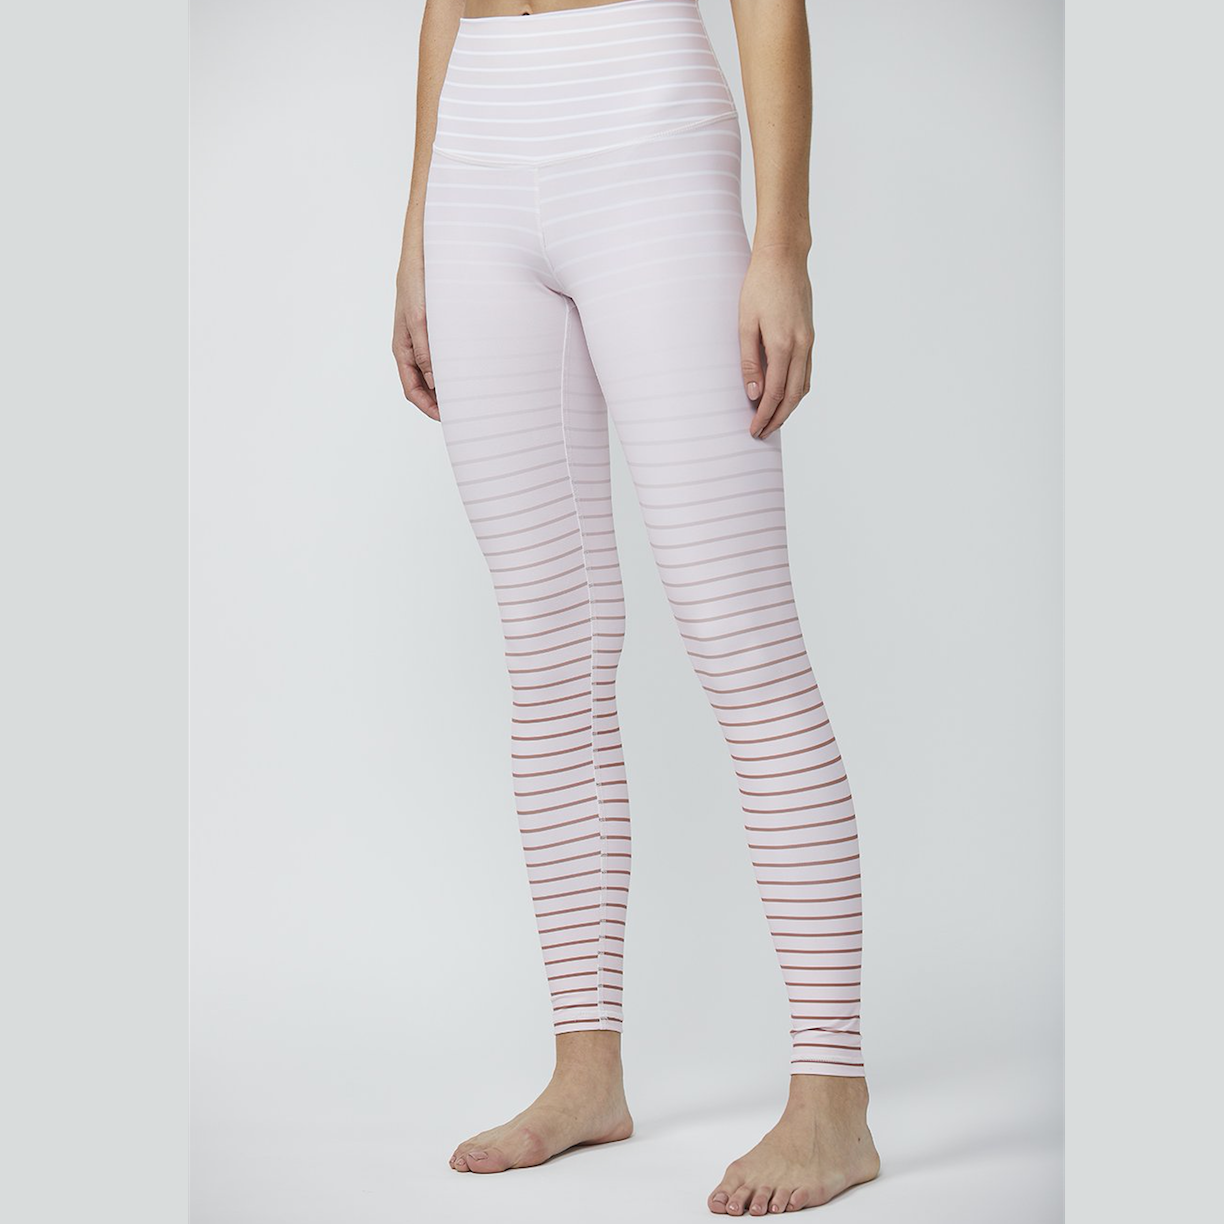 Dyi Clothing Legging Blush Rose Gold Ombre Tights Simplyworkout